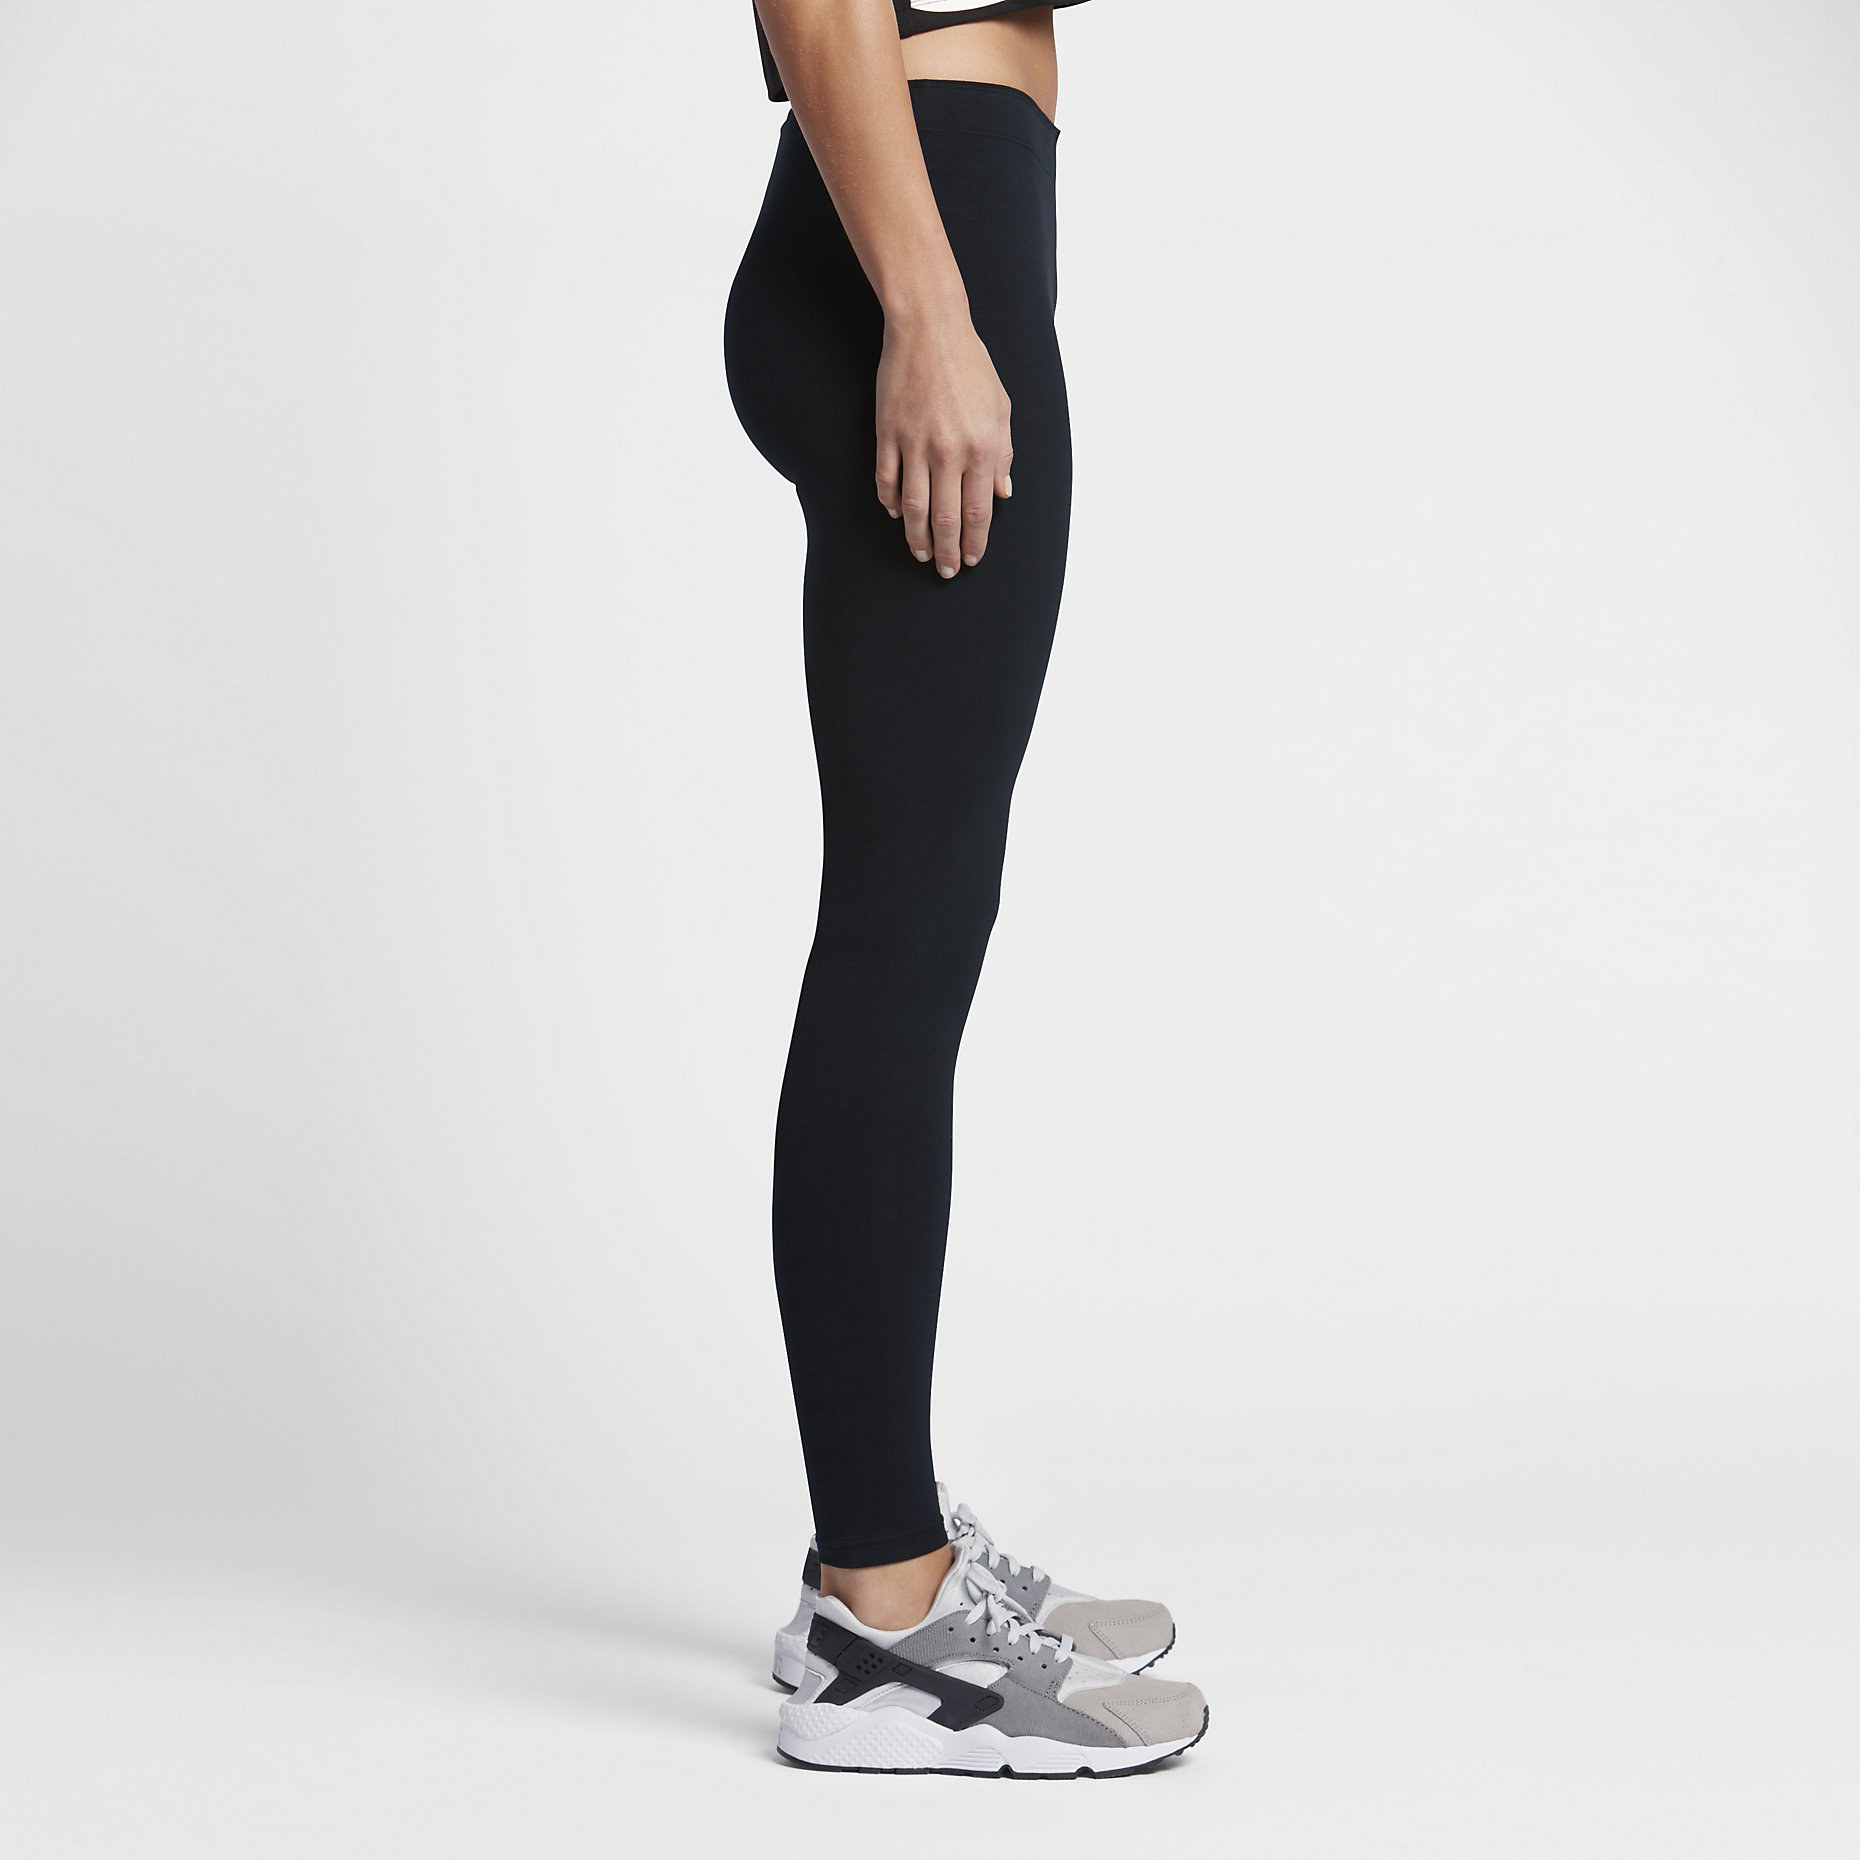 Find Sportswear Tights & Leggings at distrib-wq9rfuqq.tk Enjoy free shipping and returns with NikePlus.